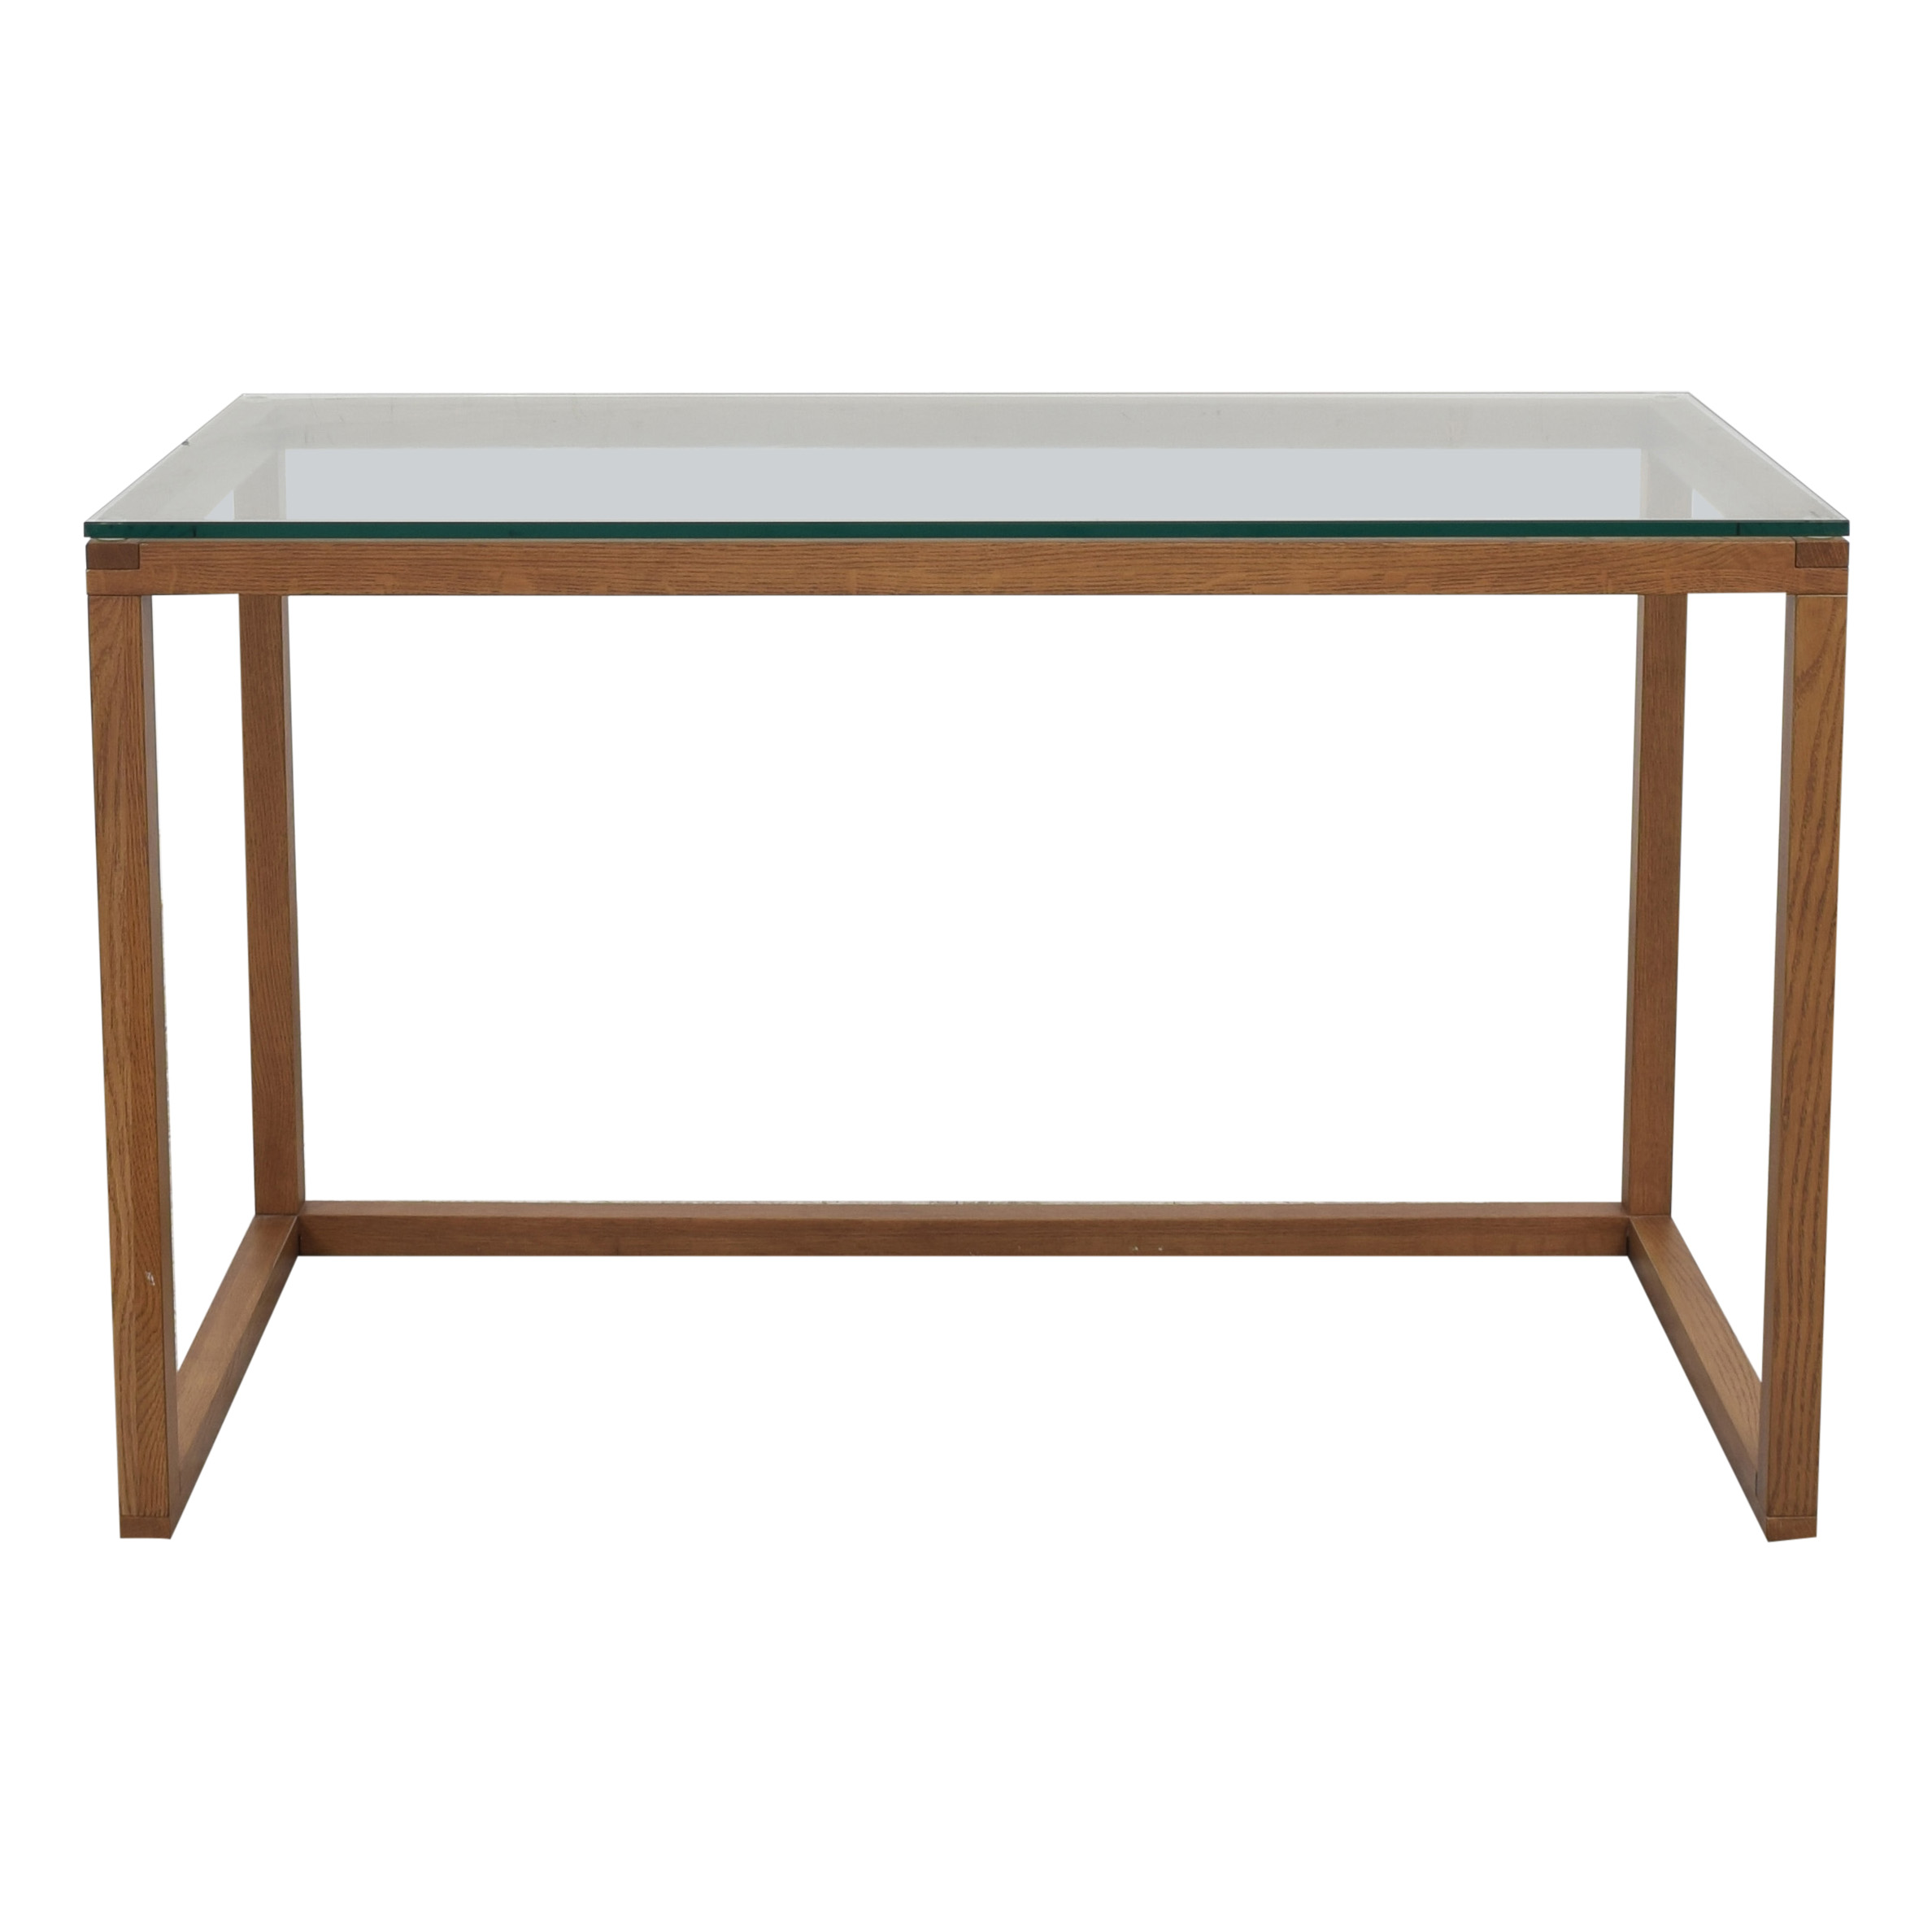 Crate & Barrel Crate & Barrel Anderson Desk used